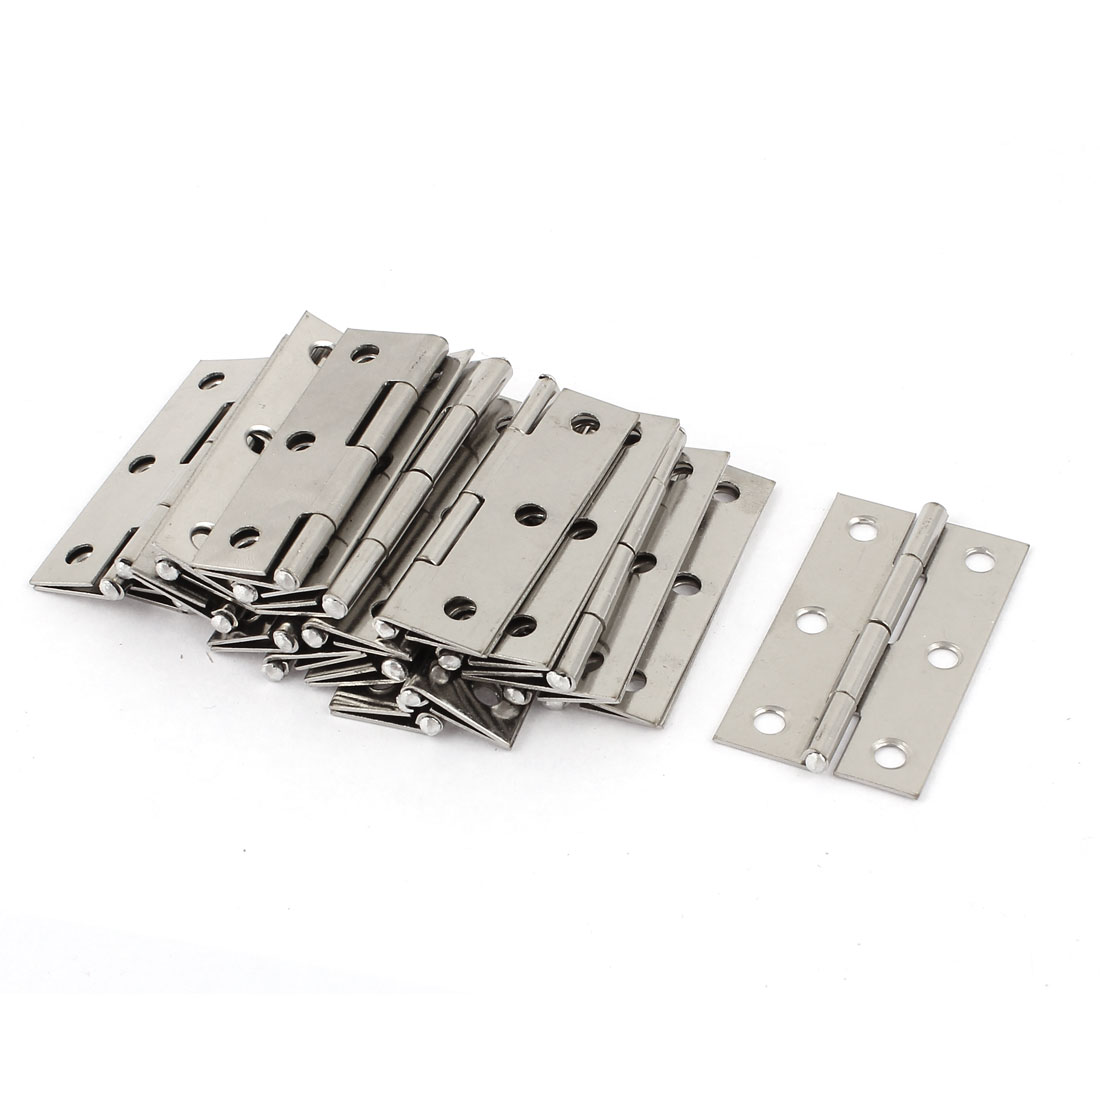 "6 Mounting Holes Stainless Steel Butt Hinges 2.2"" Long 20 Pcs"